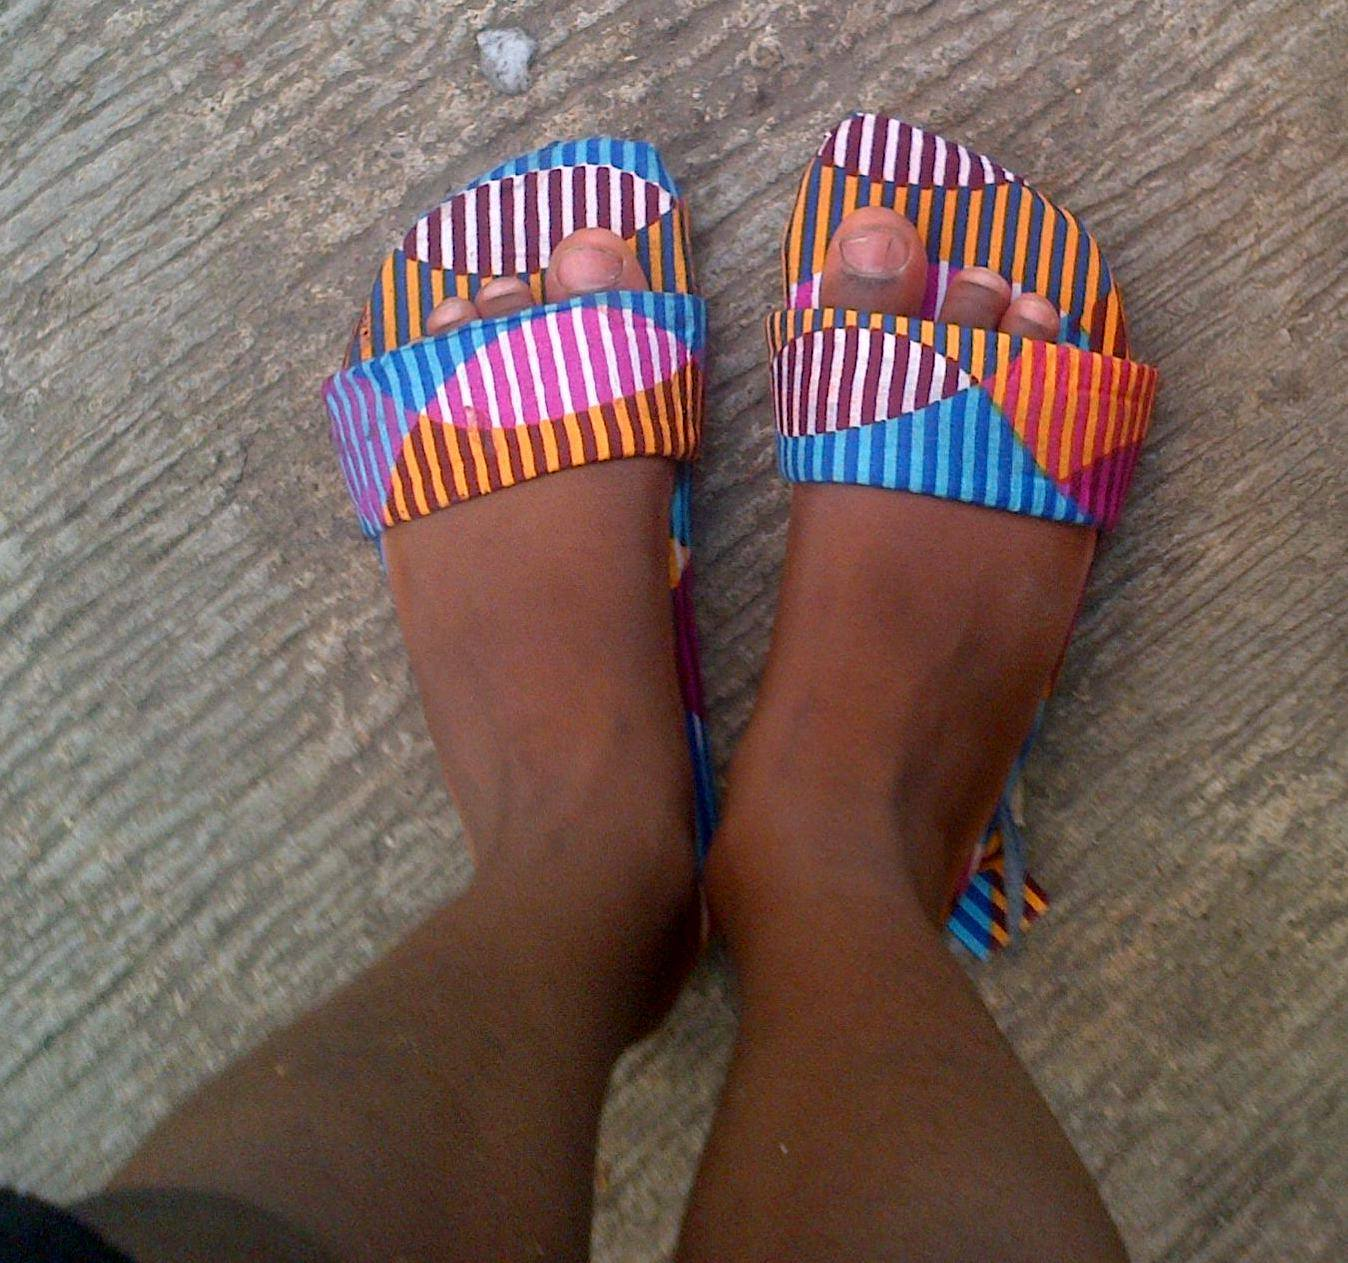 Making Custom Ankara Footwear by Restoring Old, Discarded Ones – TemiAndOluoma.com